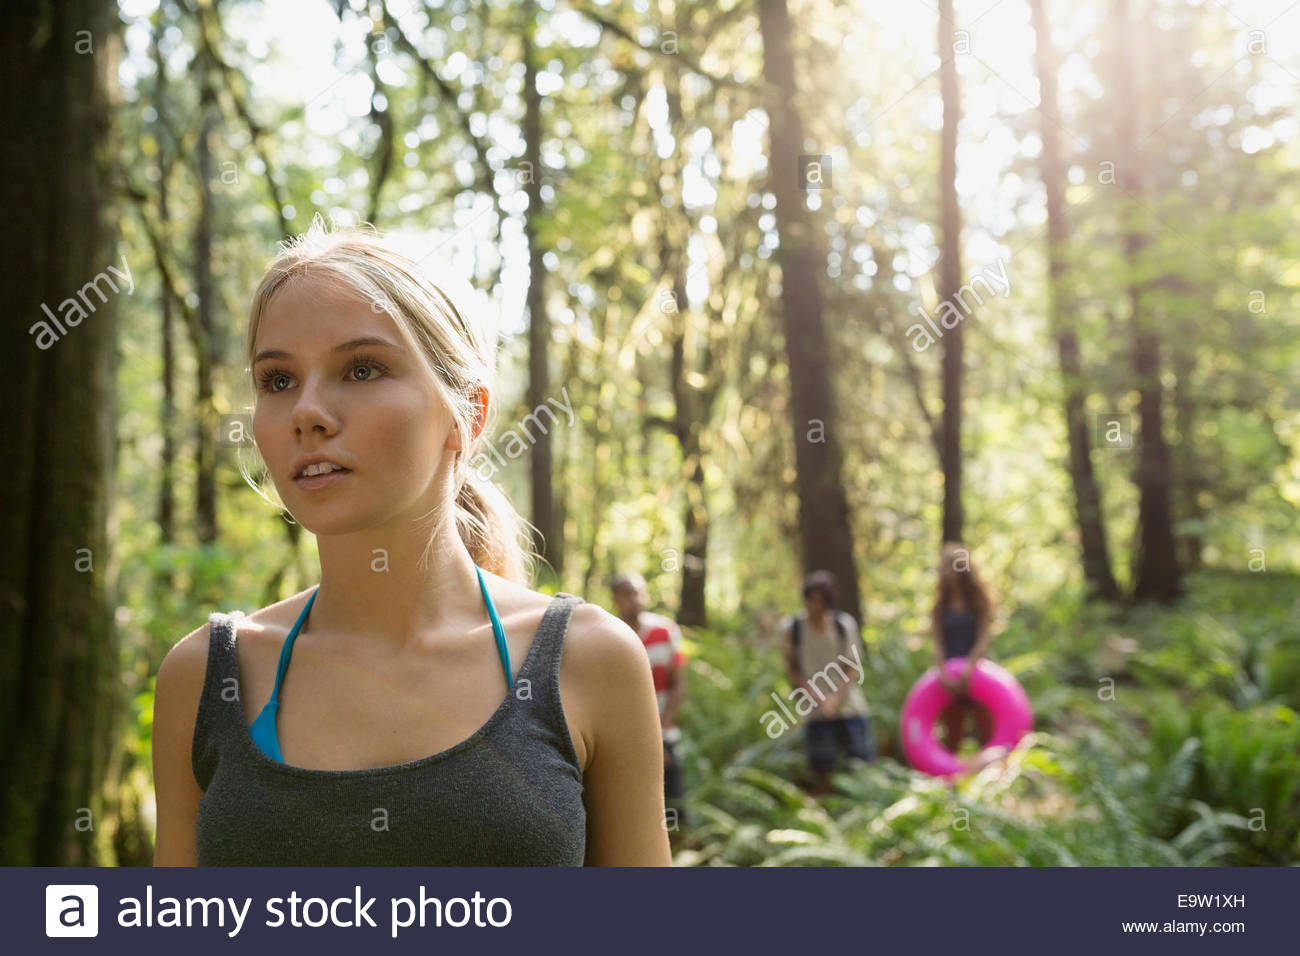 Serious young woman in woods - Stock Image